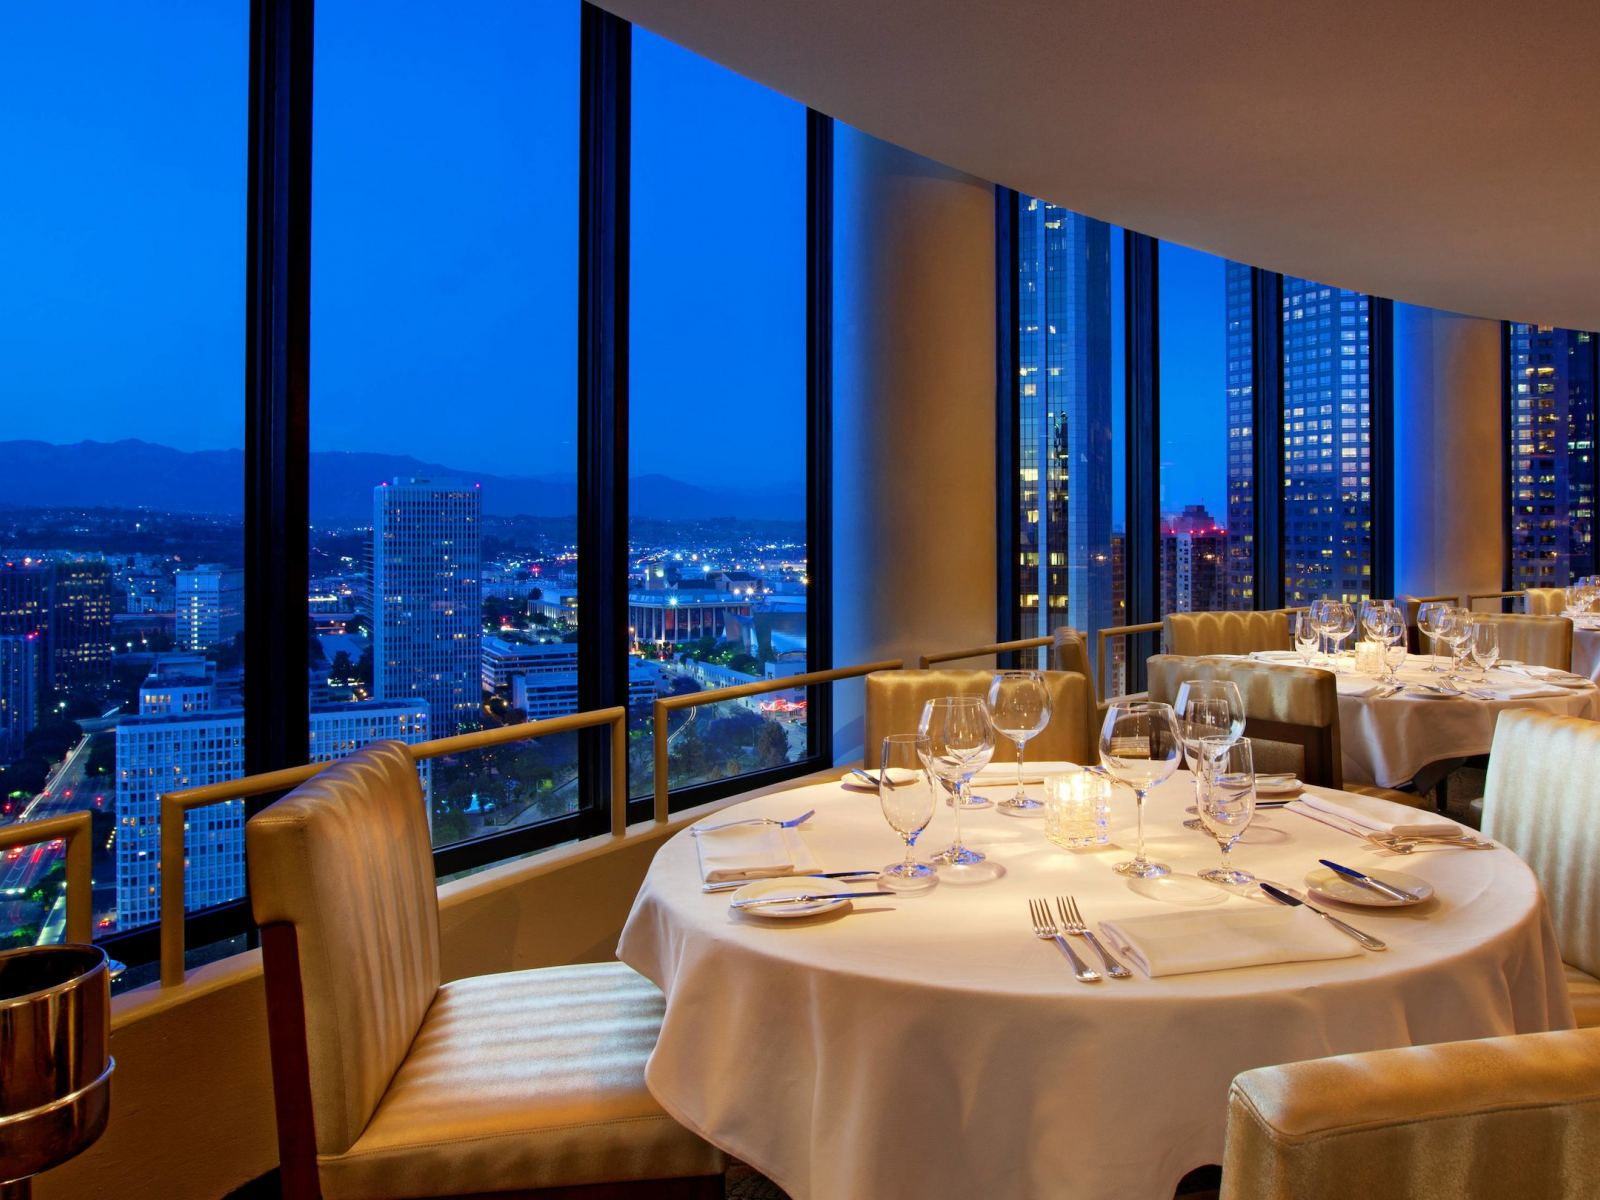 The Best Restaurants With A View In Los